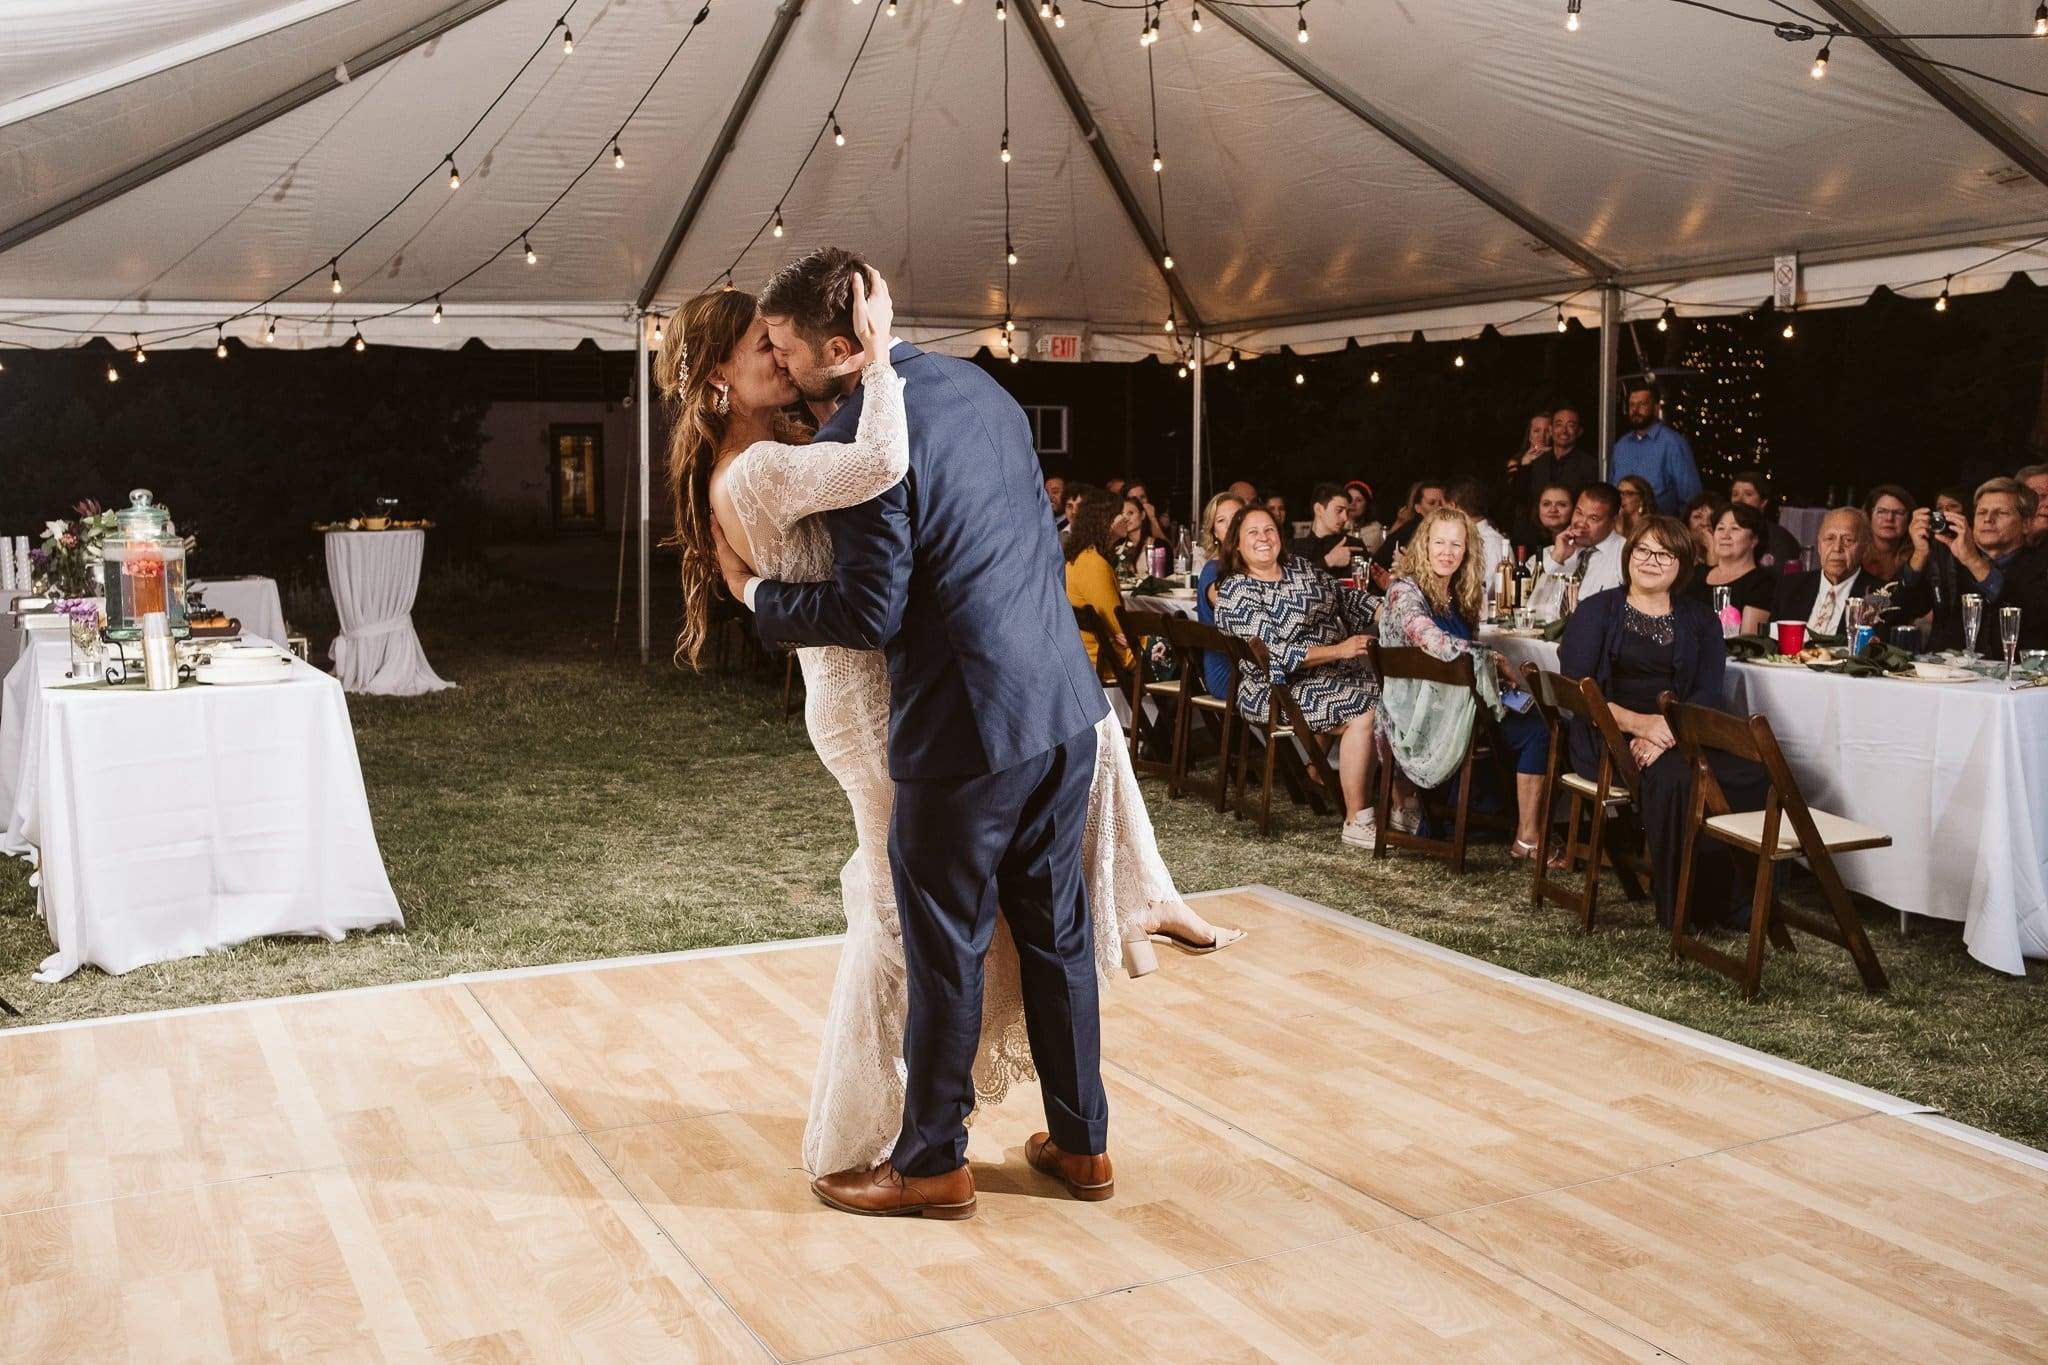 Bride and groom first dance at Rivertree Lodge in Breckenridge